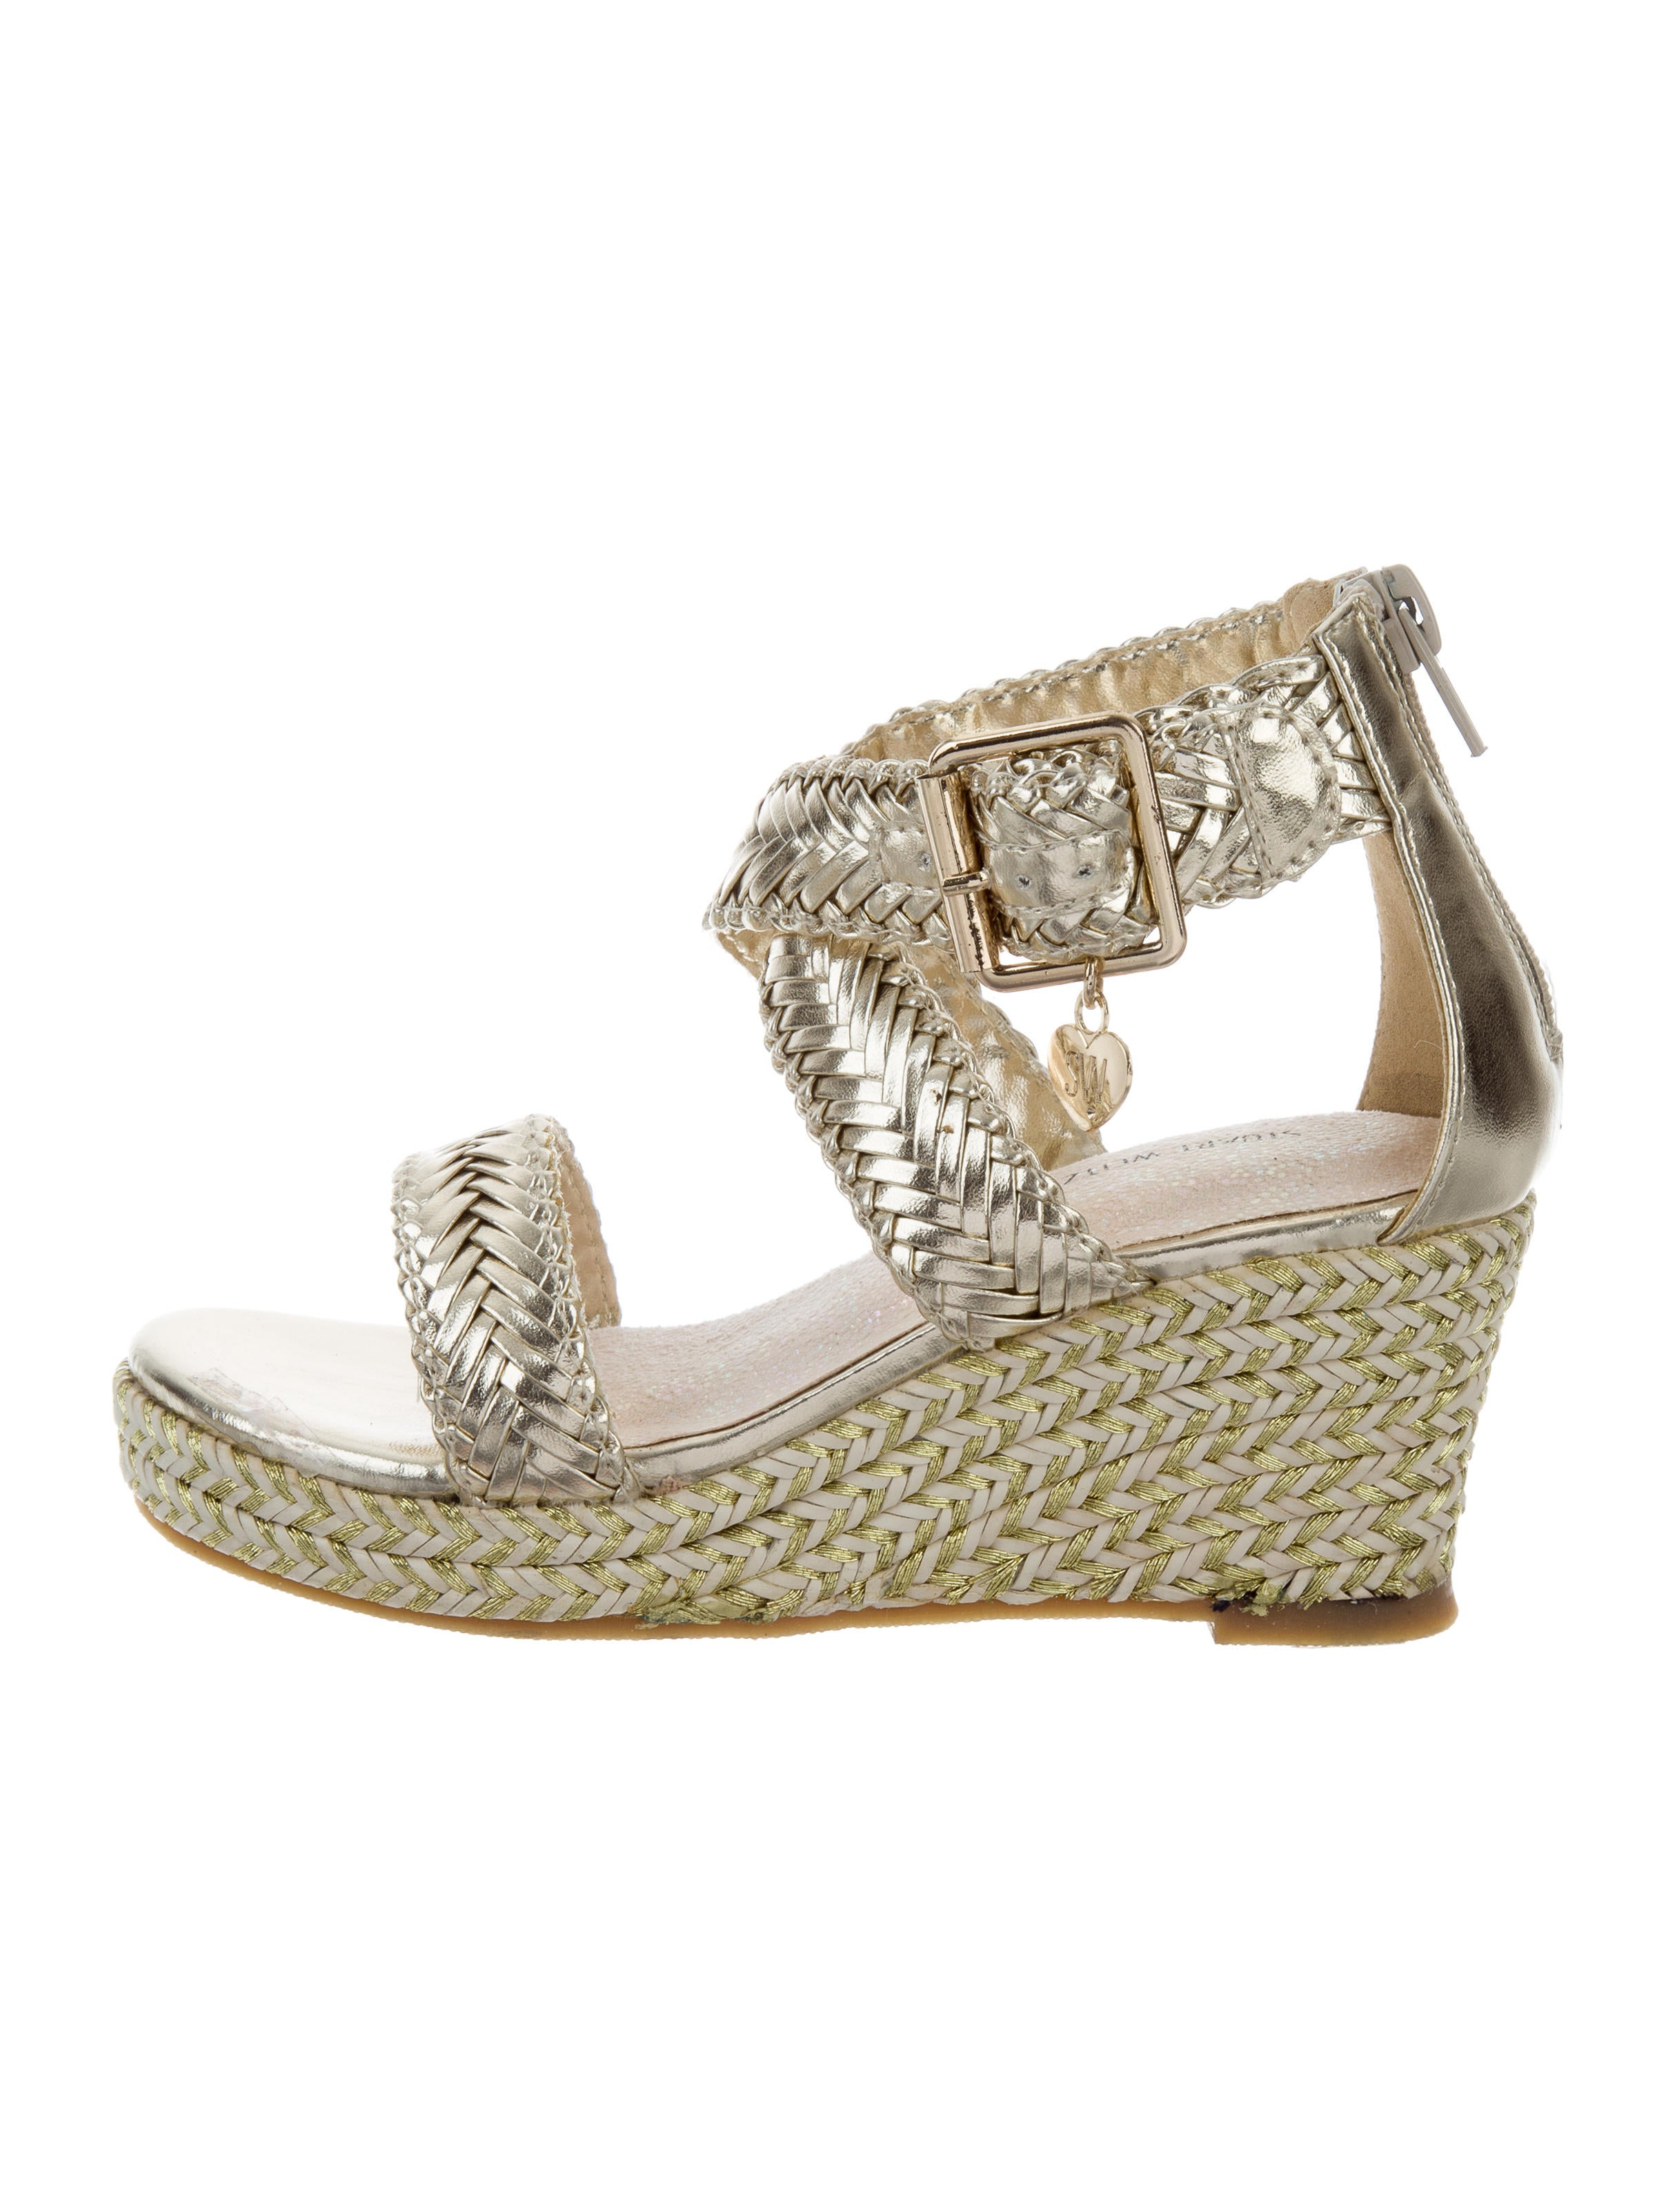 stuart girls Shop for brands you love on sale discounted shoes, clothing, accessories and more at 6pmcom score on the style, score on the price.